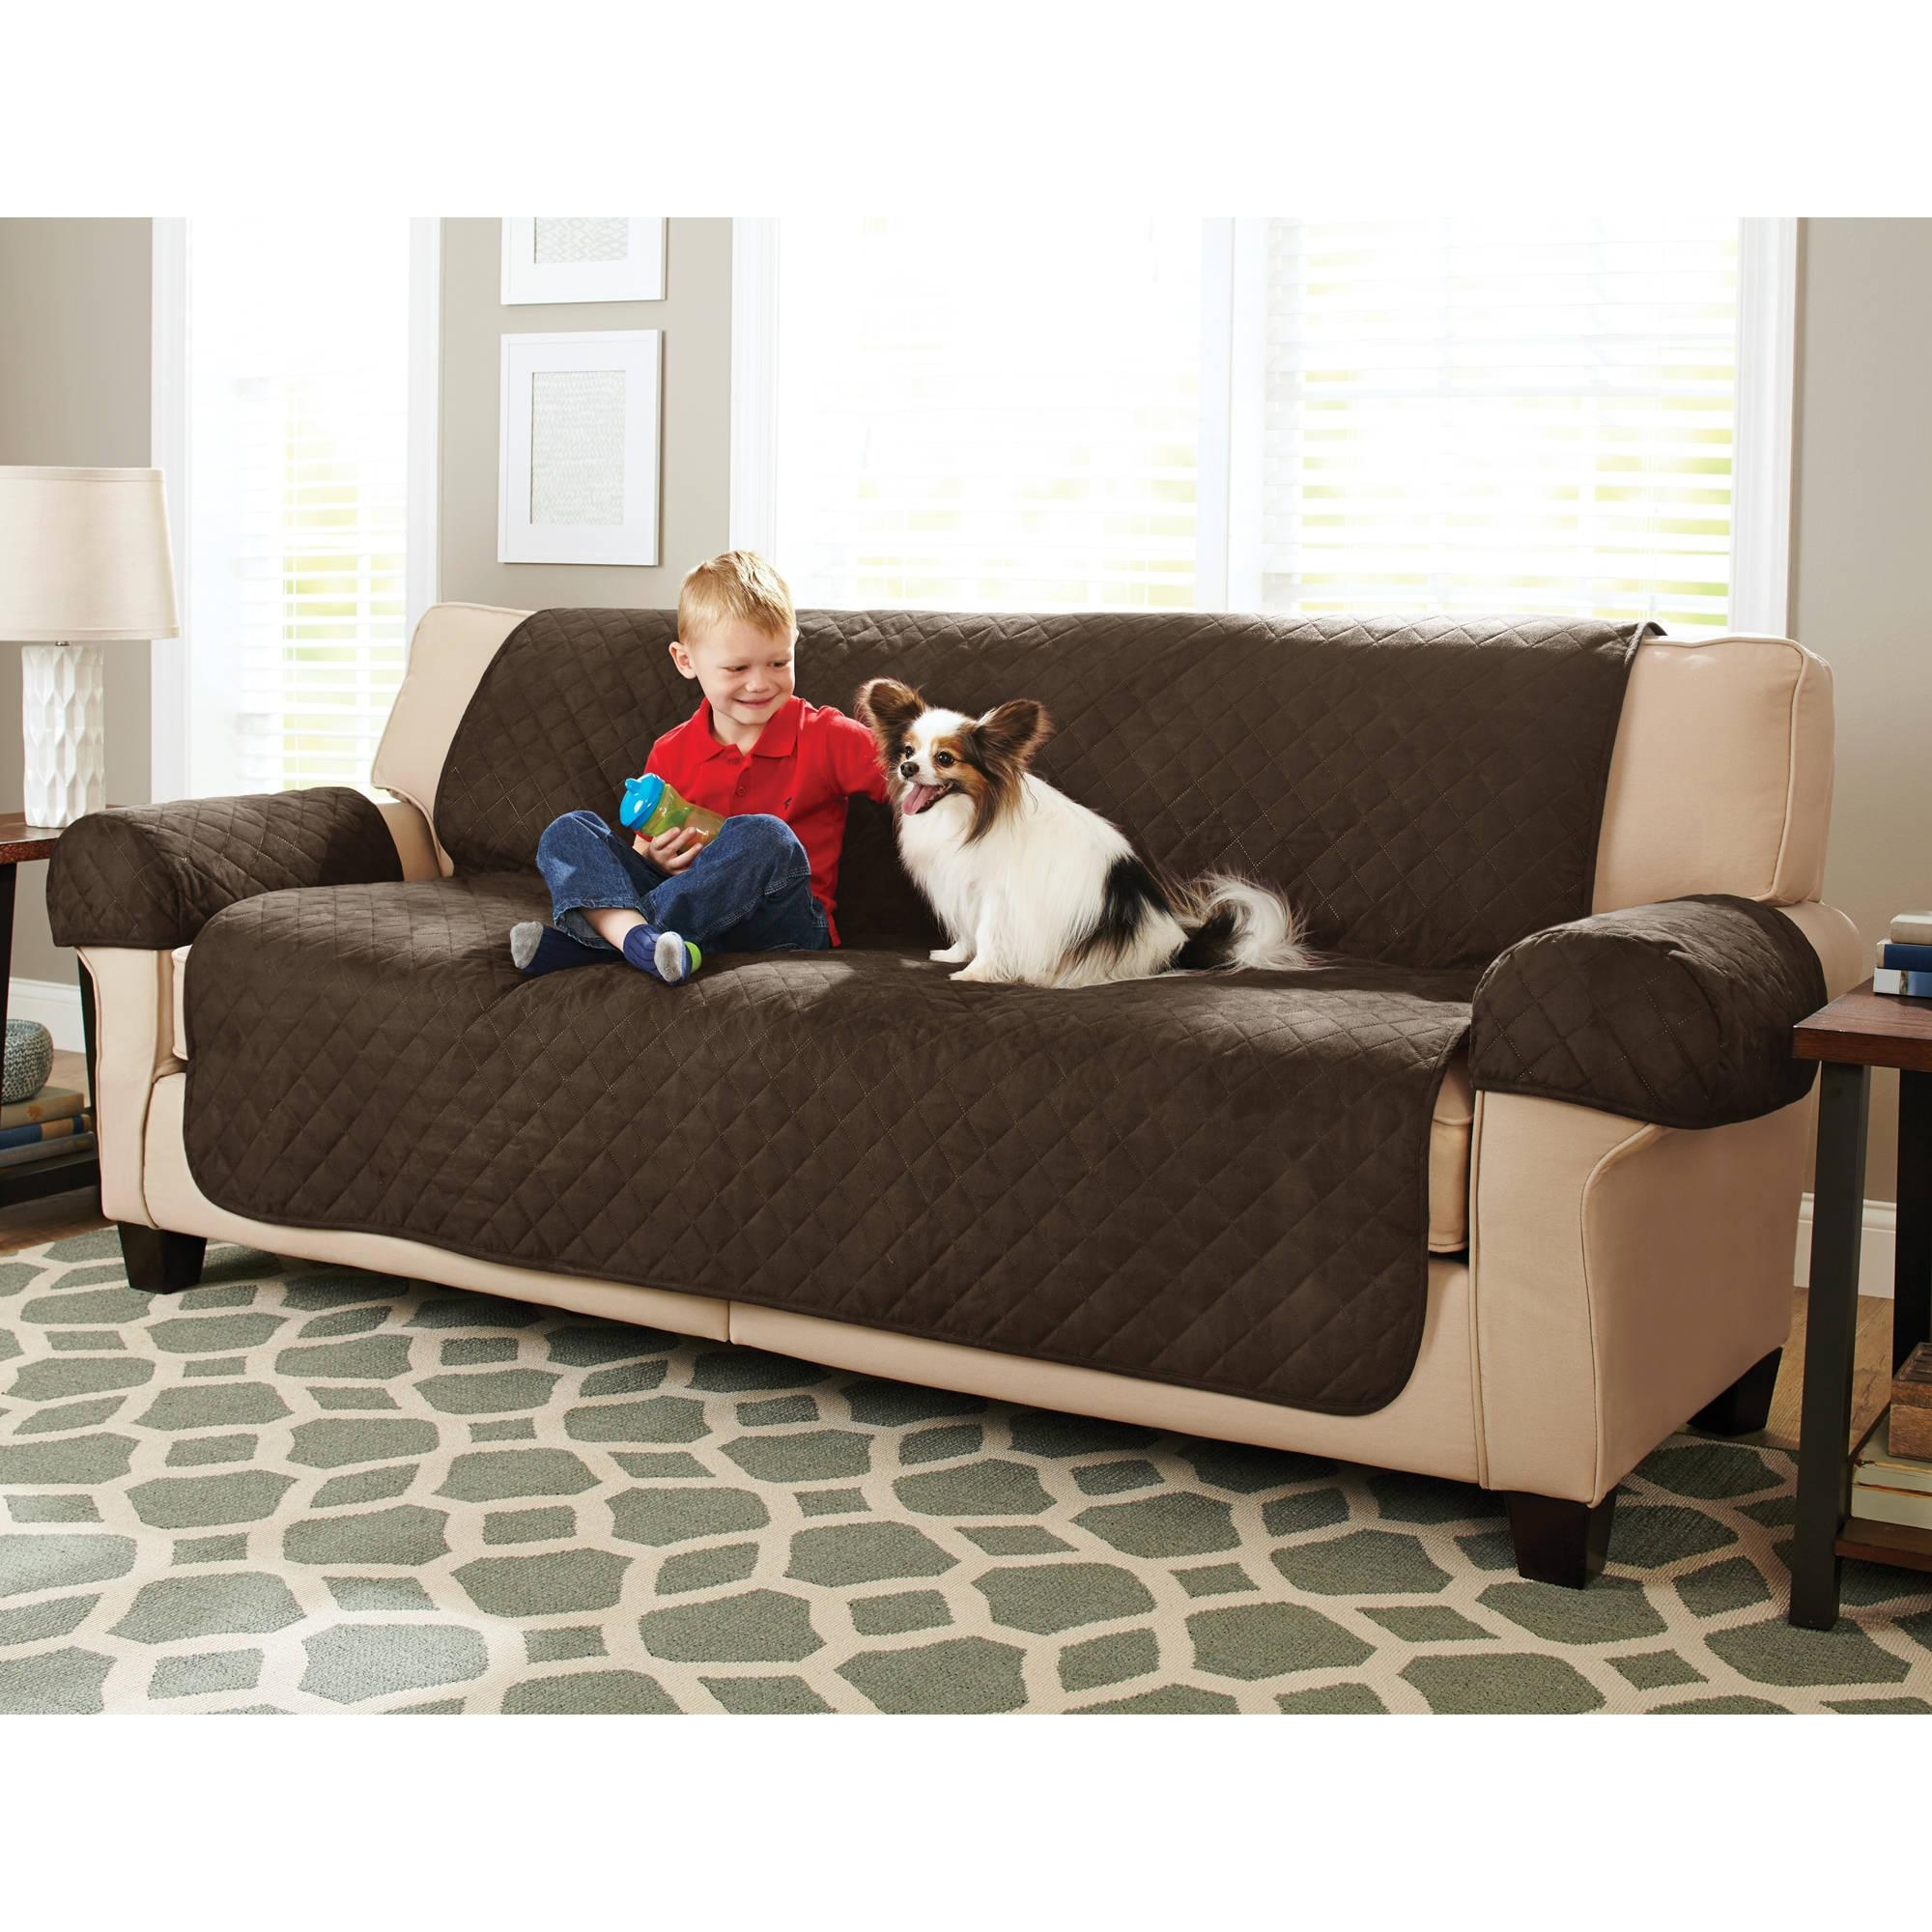 Decor: Fascinating Sofa Covers Walmart For Alluring Furniture Throughout 3 Piece Sectional Sofa Slipcovers (View 4 of 20)